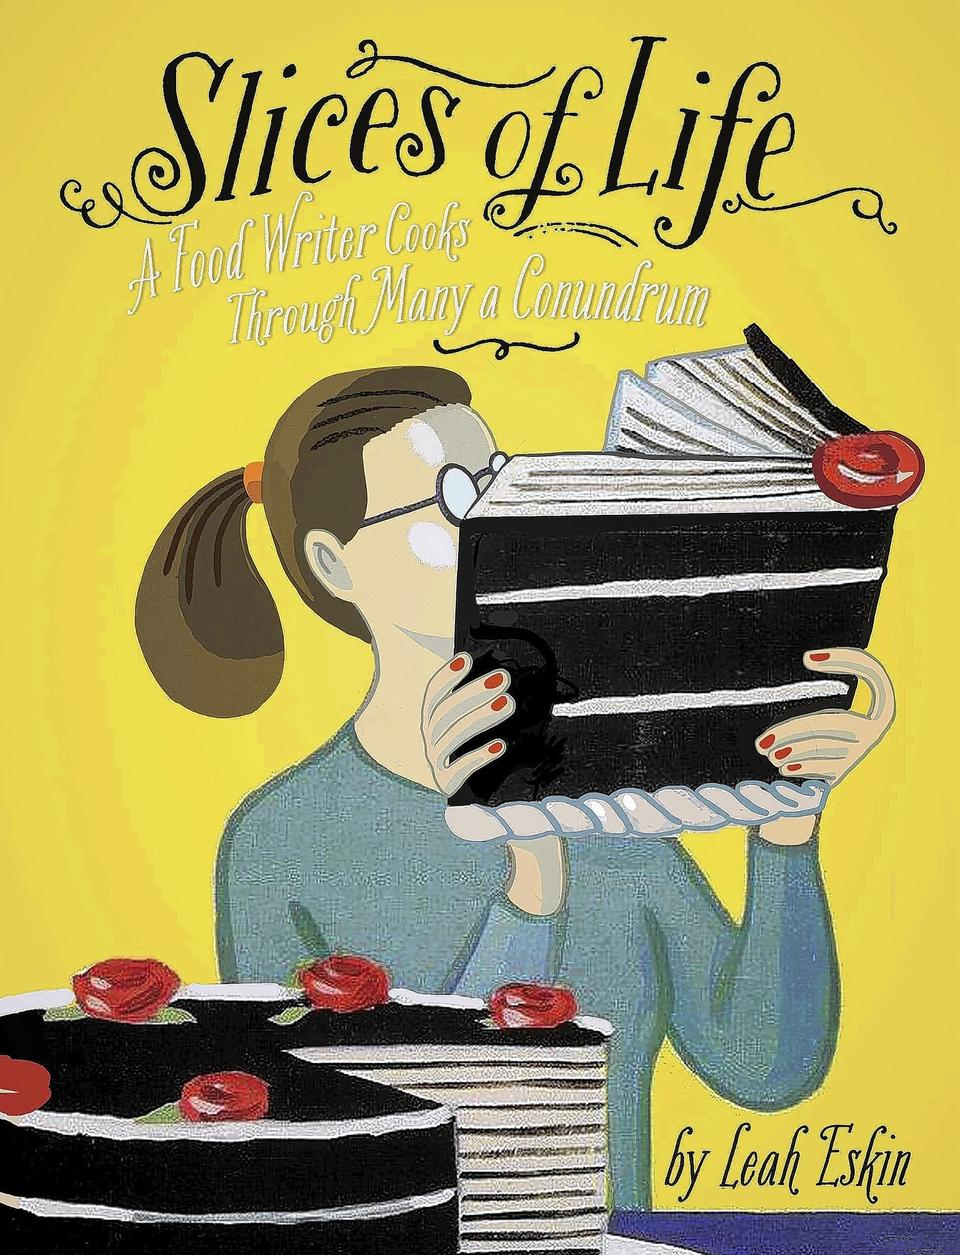 """""""Slices of Life: A Food Writer Cooks Through Many a Conundrum,"""" by Leah Eskin"""